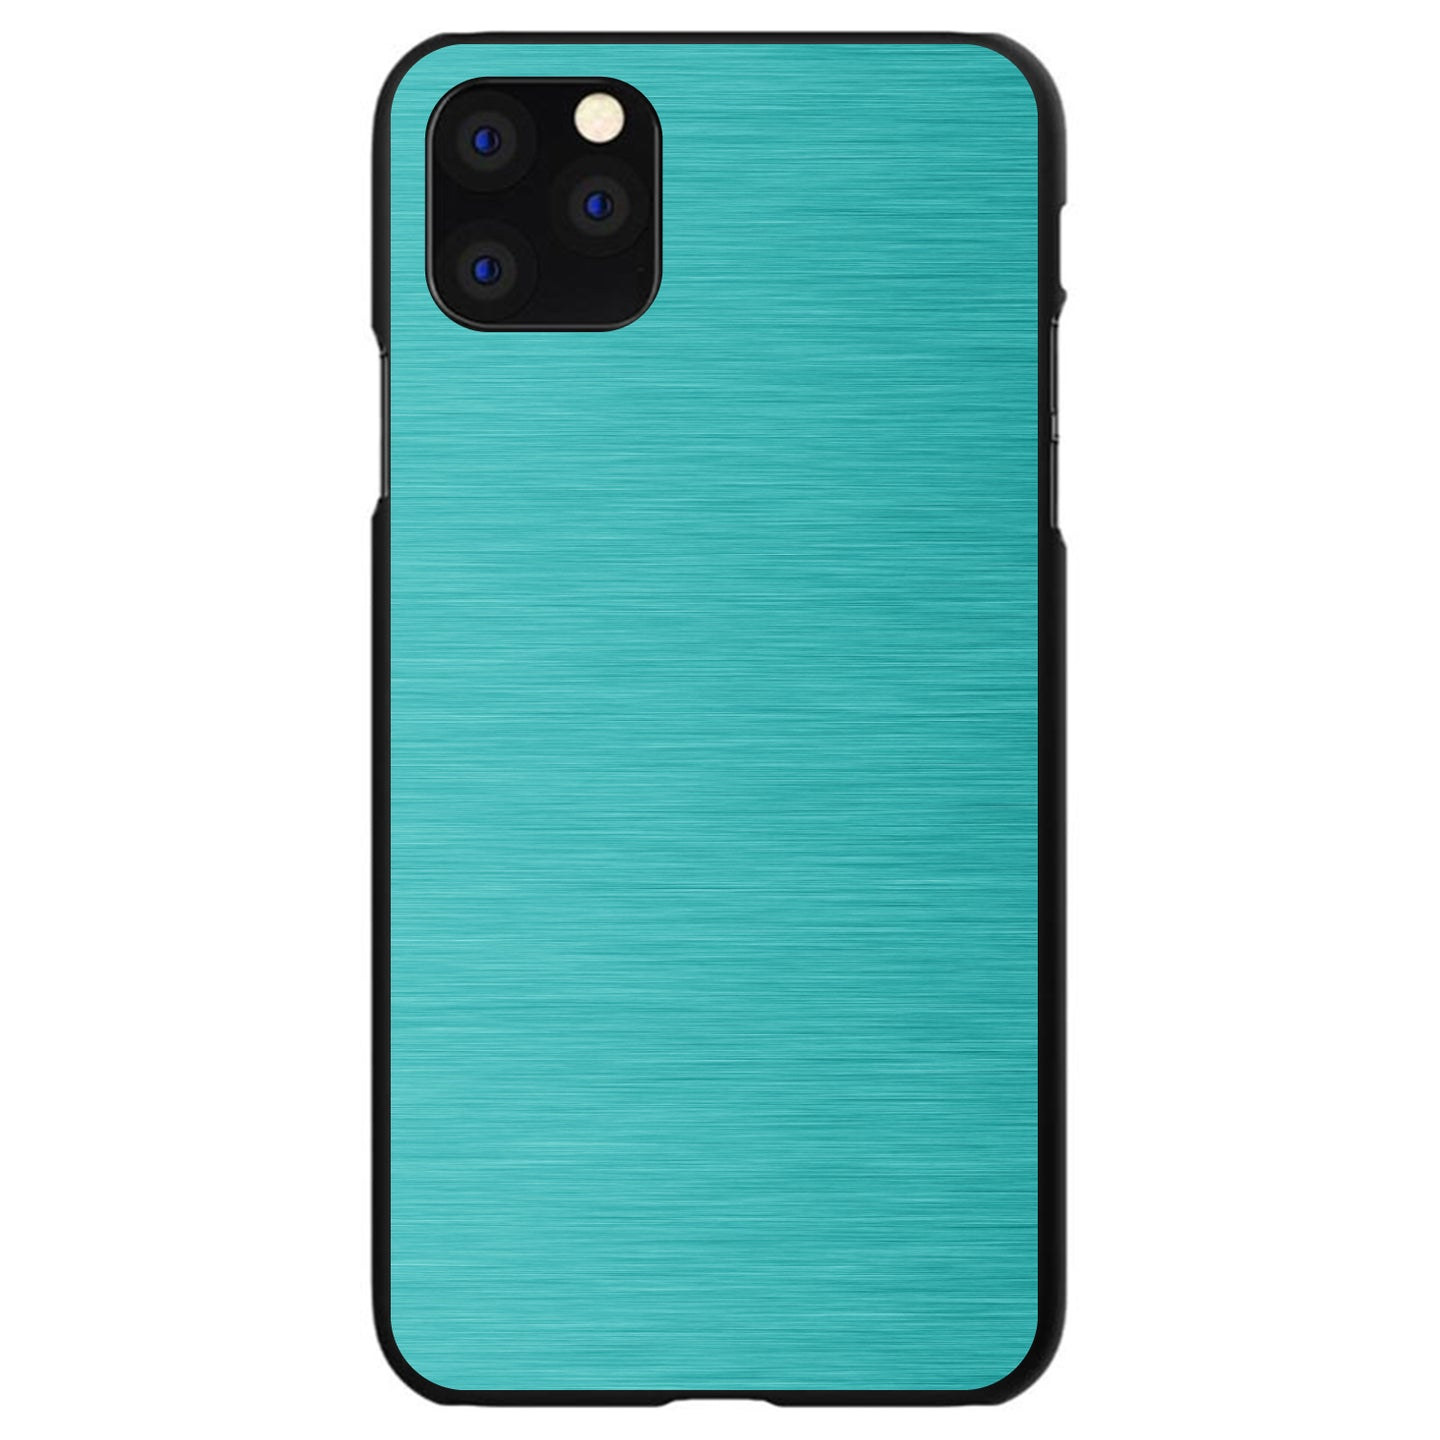 DistinctInk® Hard Plastic Snap-On Case for Apple iPhone - Teal Stainless Steel Print